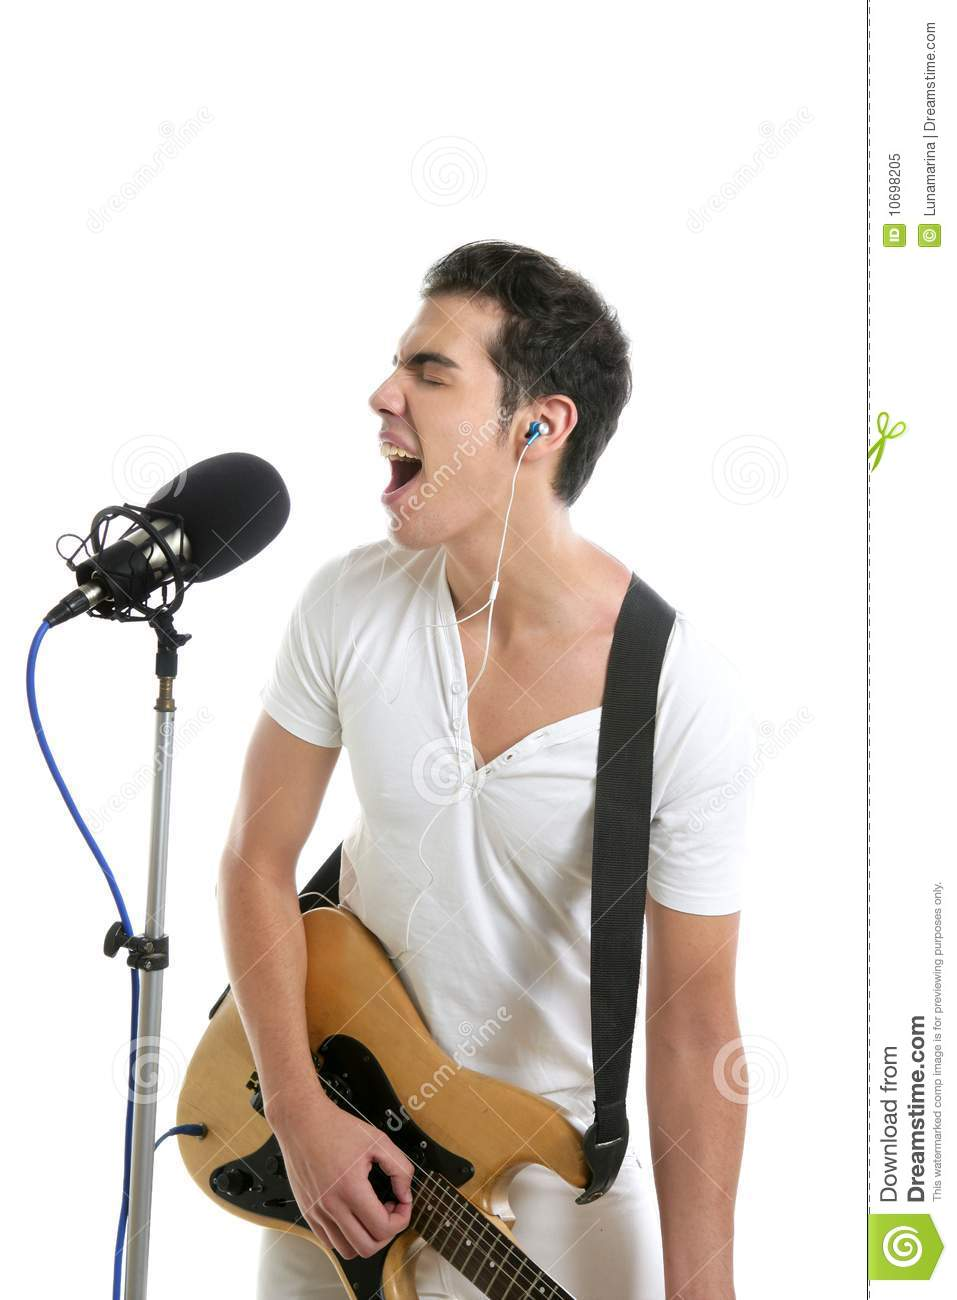 Musician young man playing electric guitar